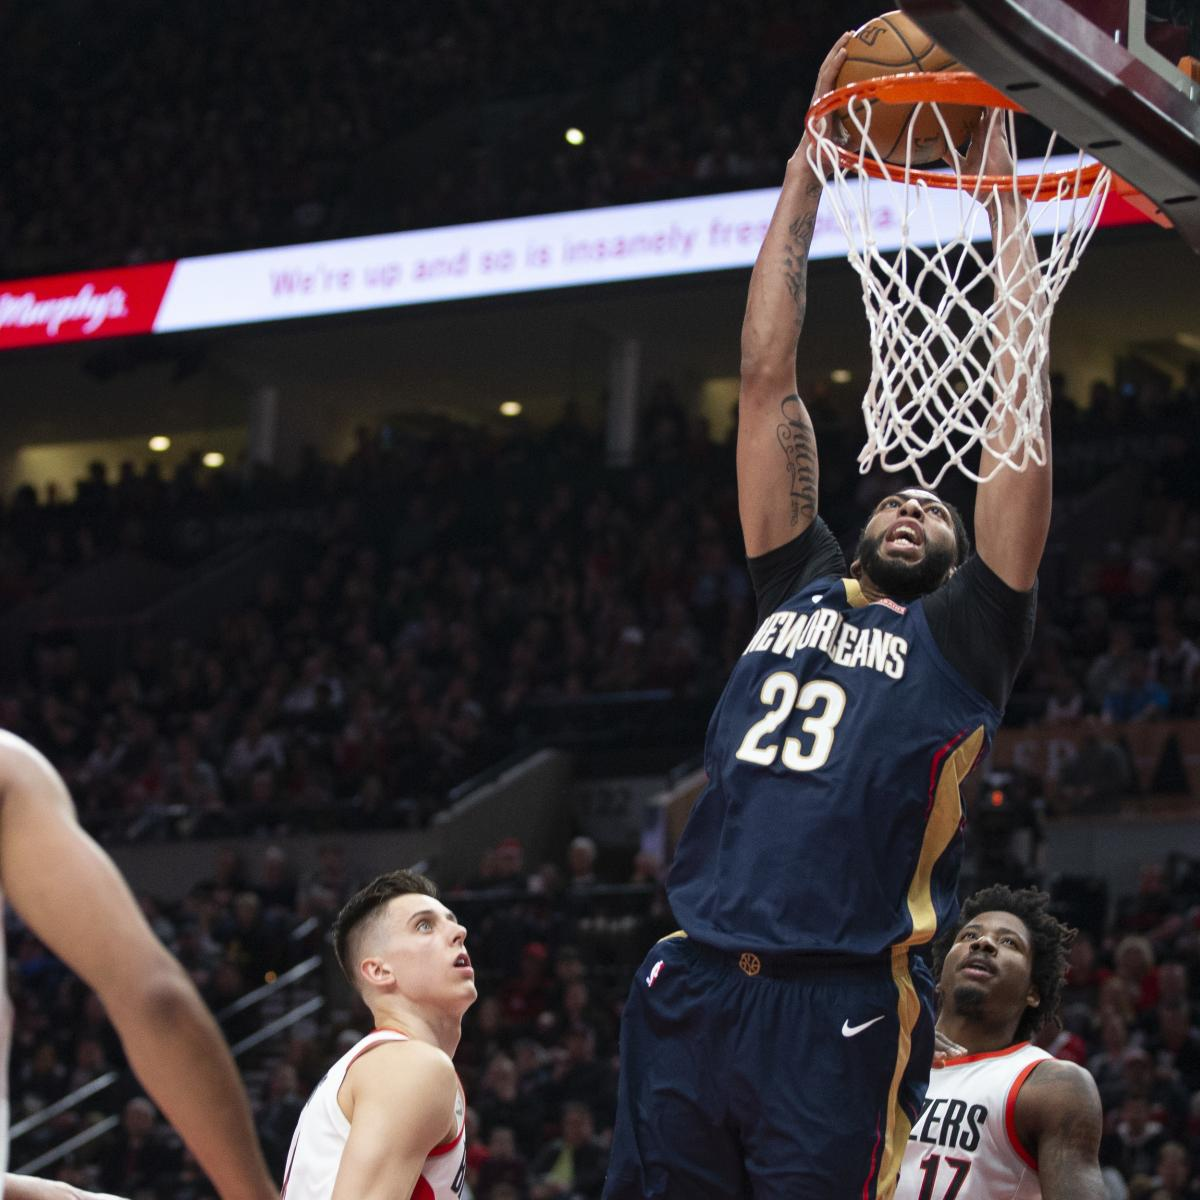 Portland Blazers Game: Anthony Davis Drops 35 As Pelicans Hang On To Beat Trail